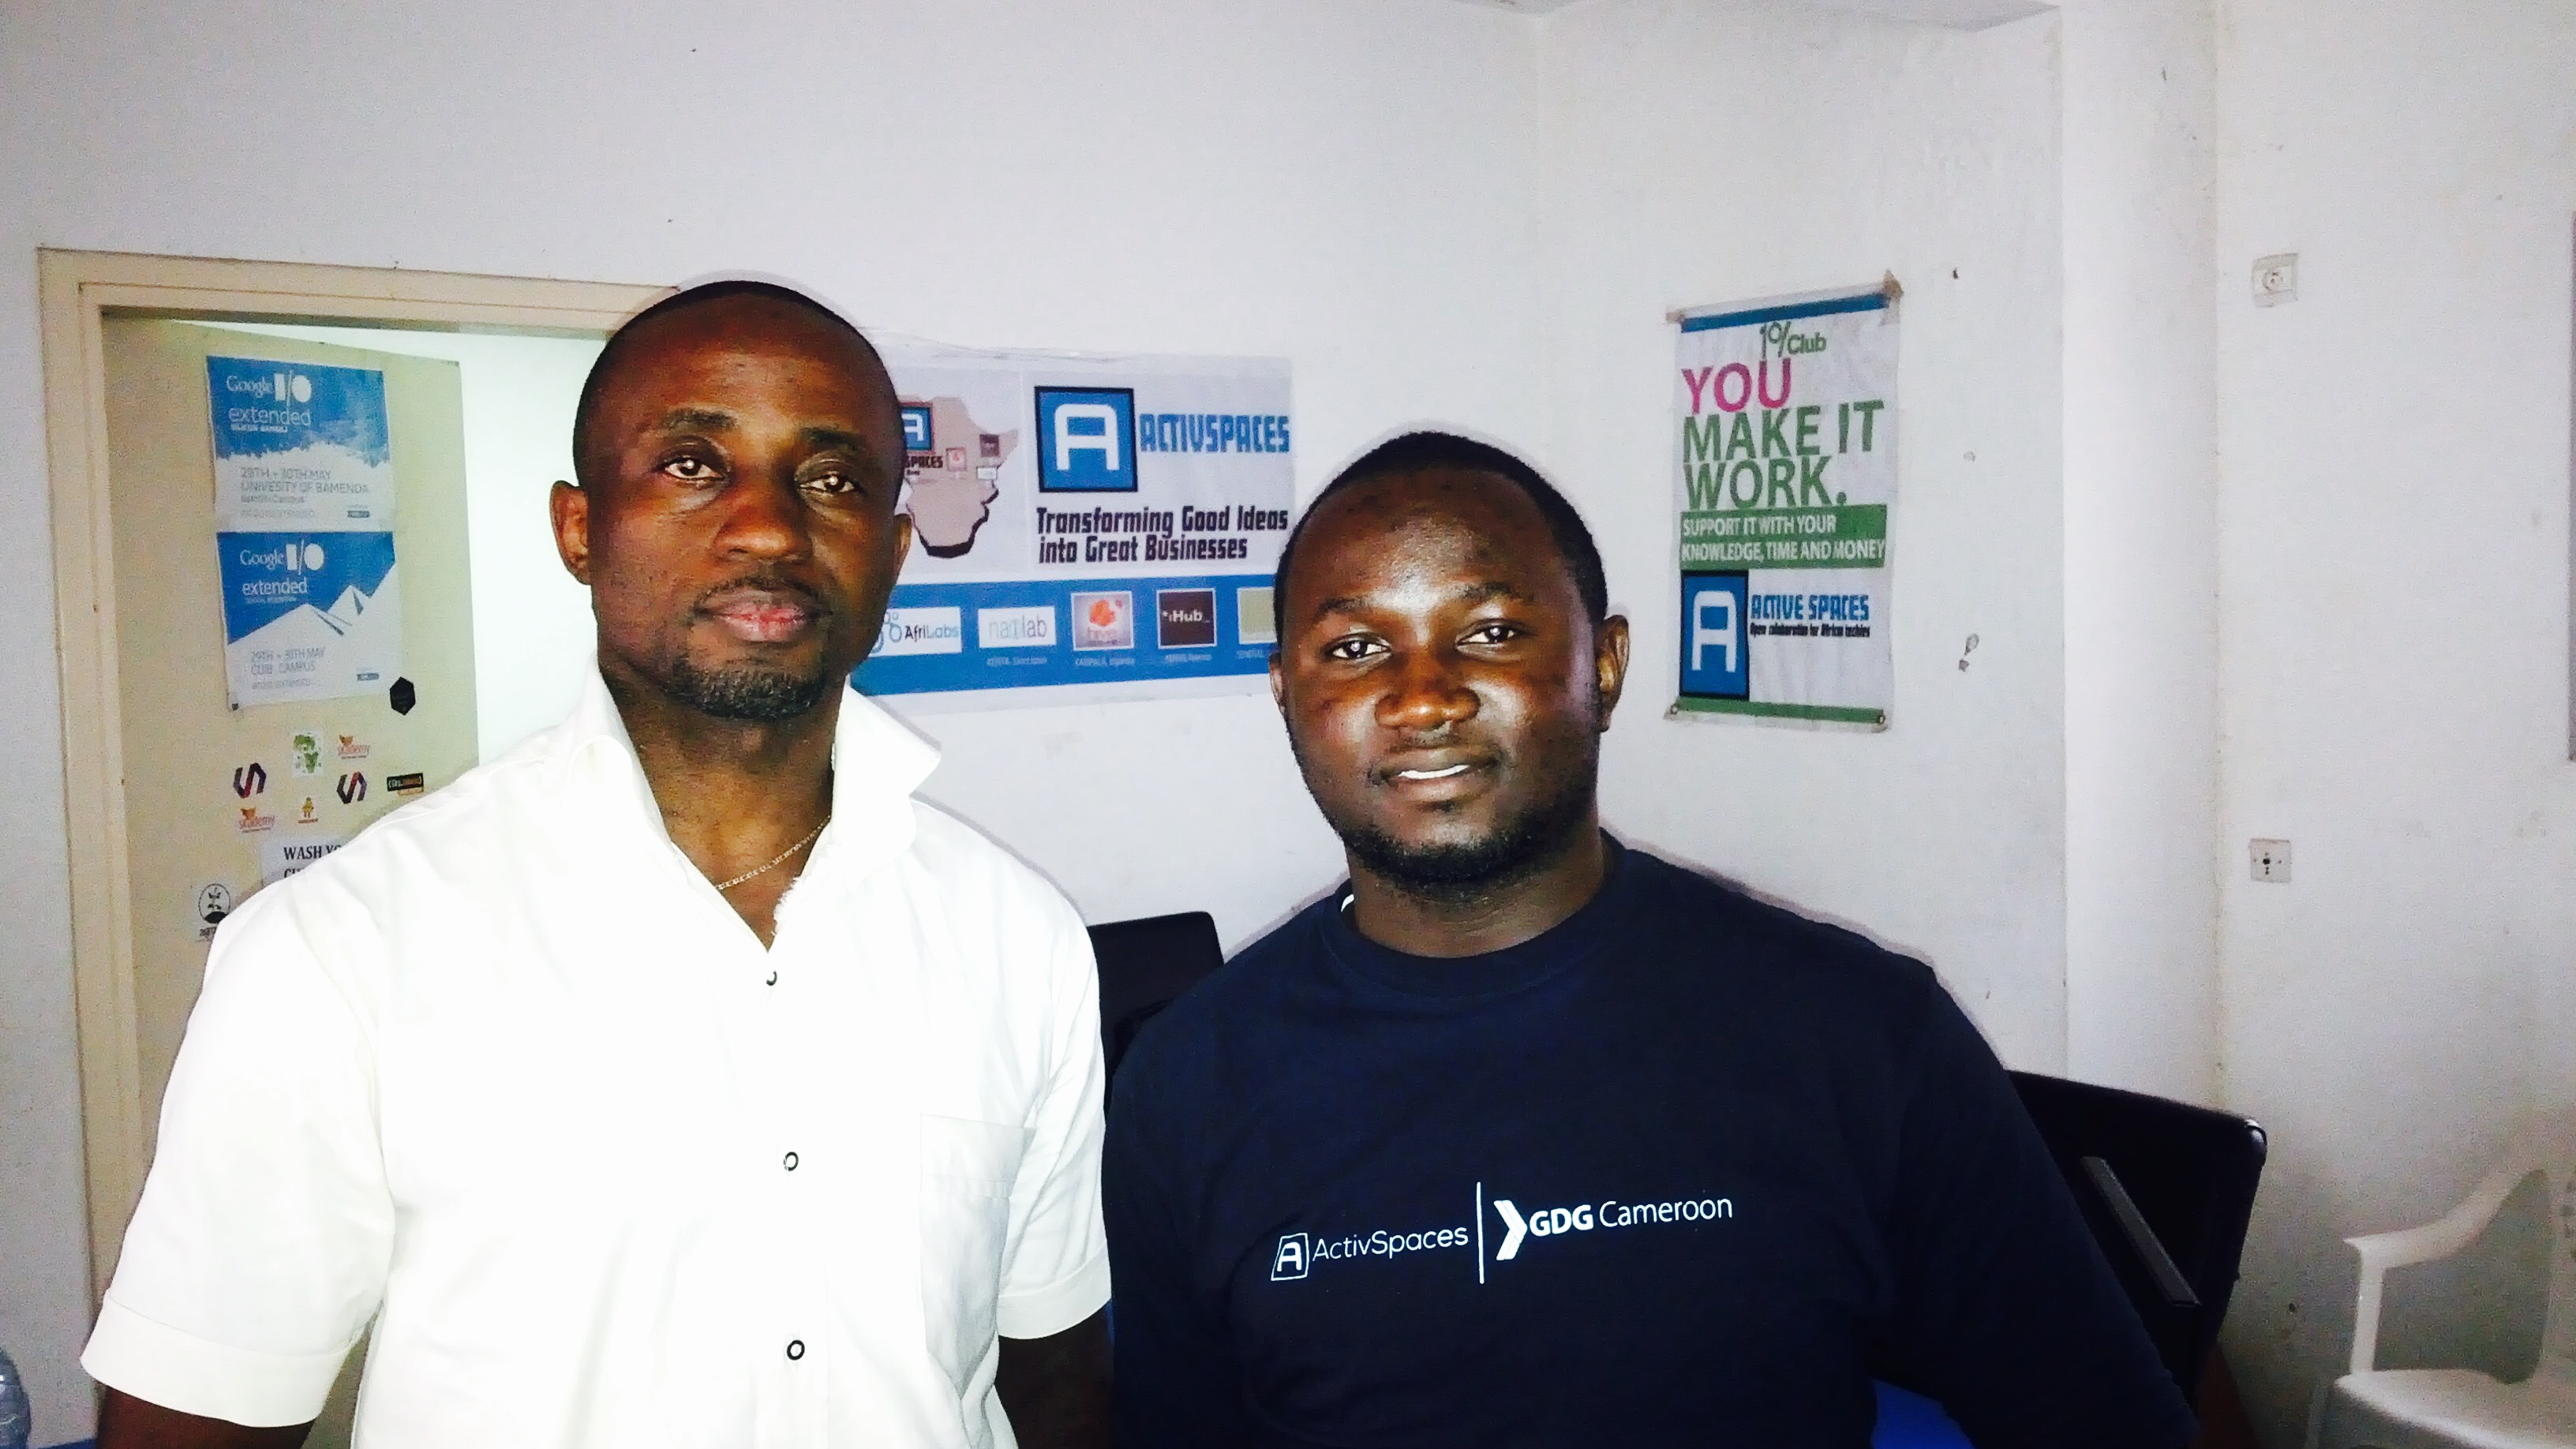 Nchemty OzongAshu (left) - C-Life Country Director - Cameroon; Activespace Community Development Specialist Otto Akama (right)